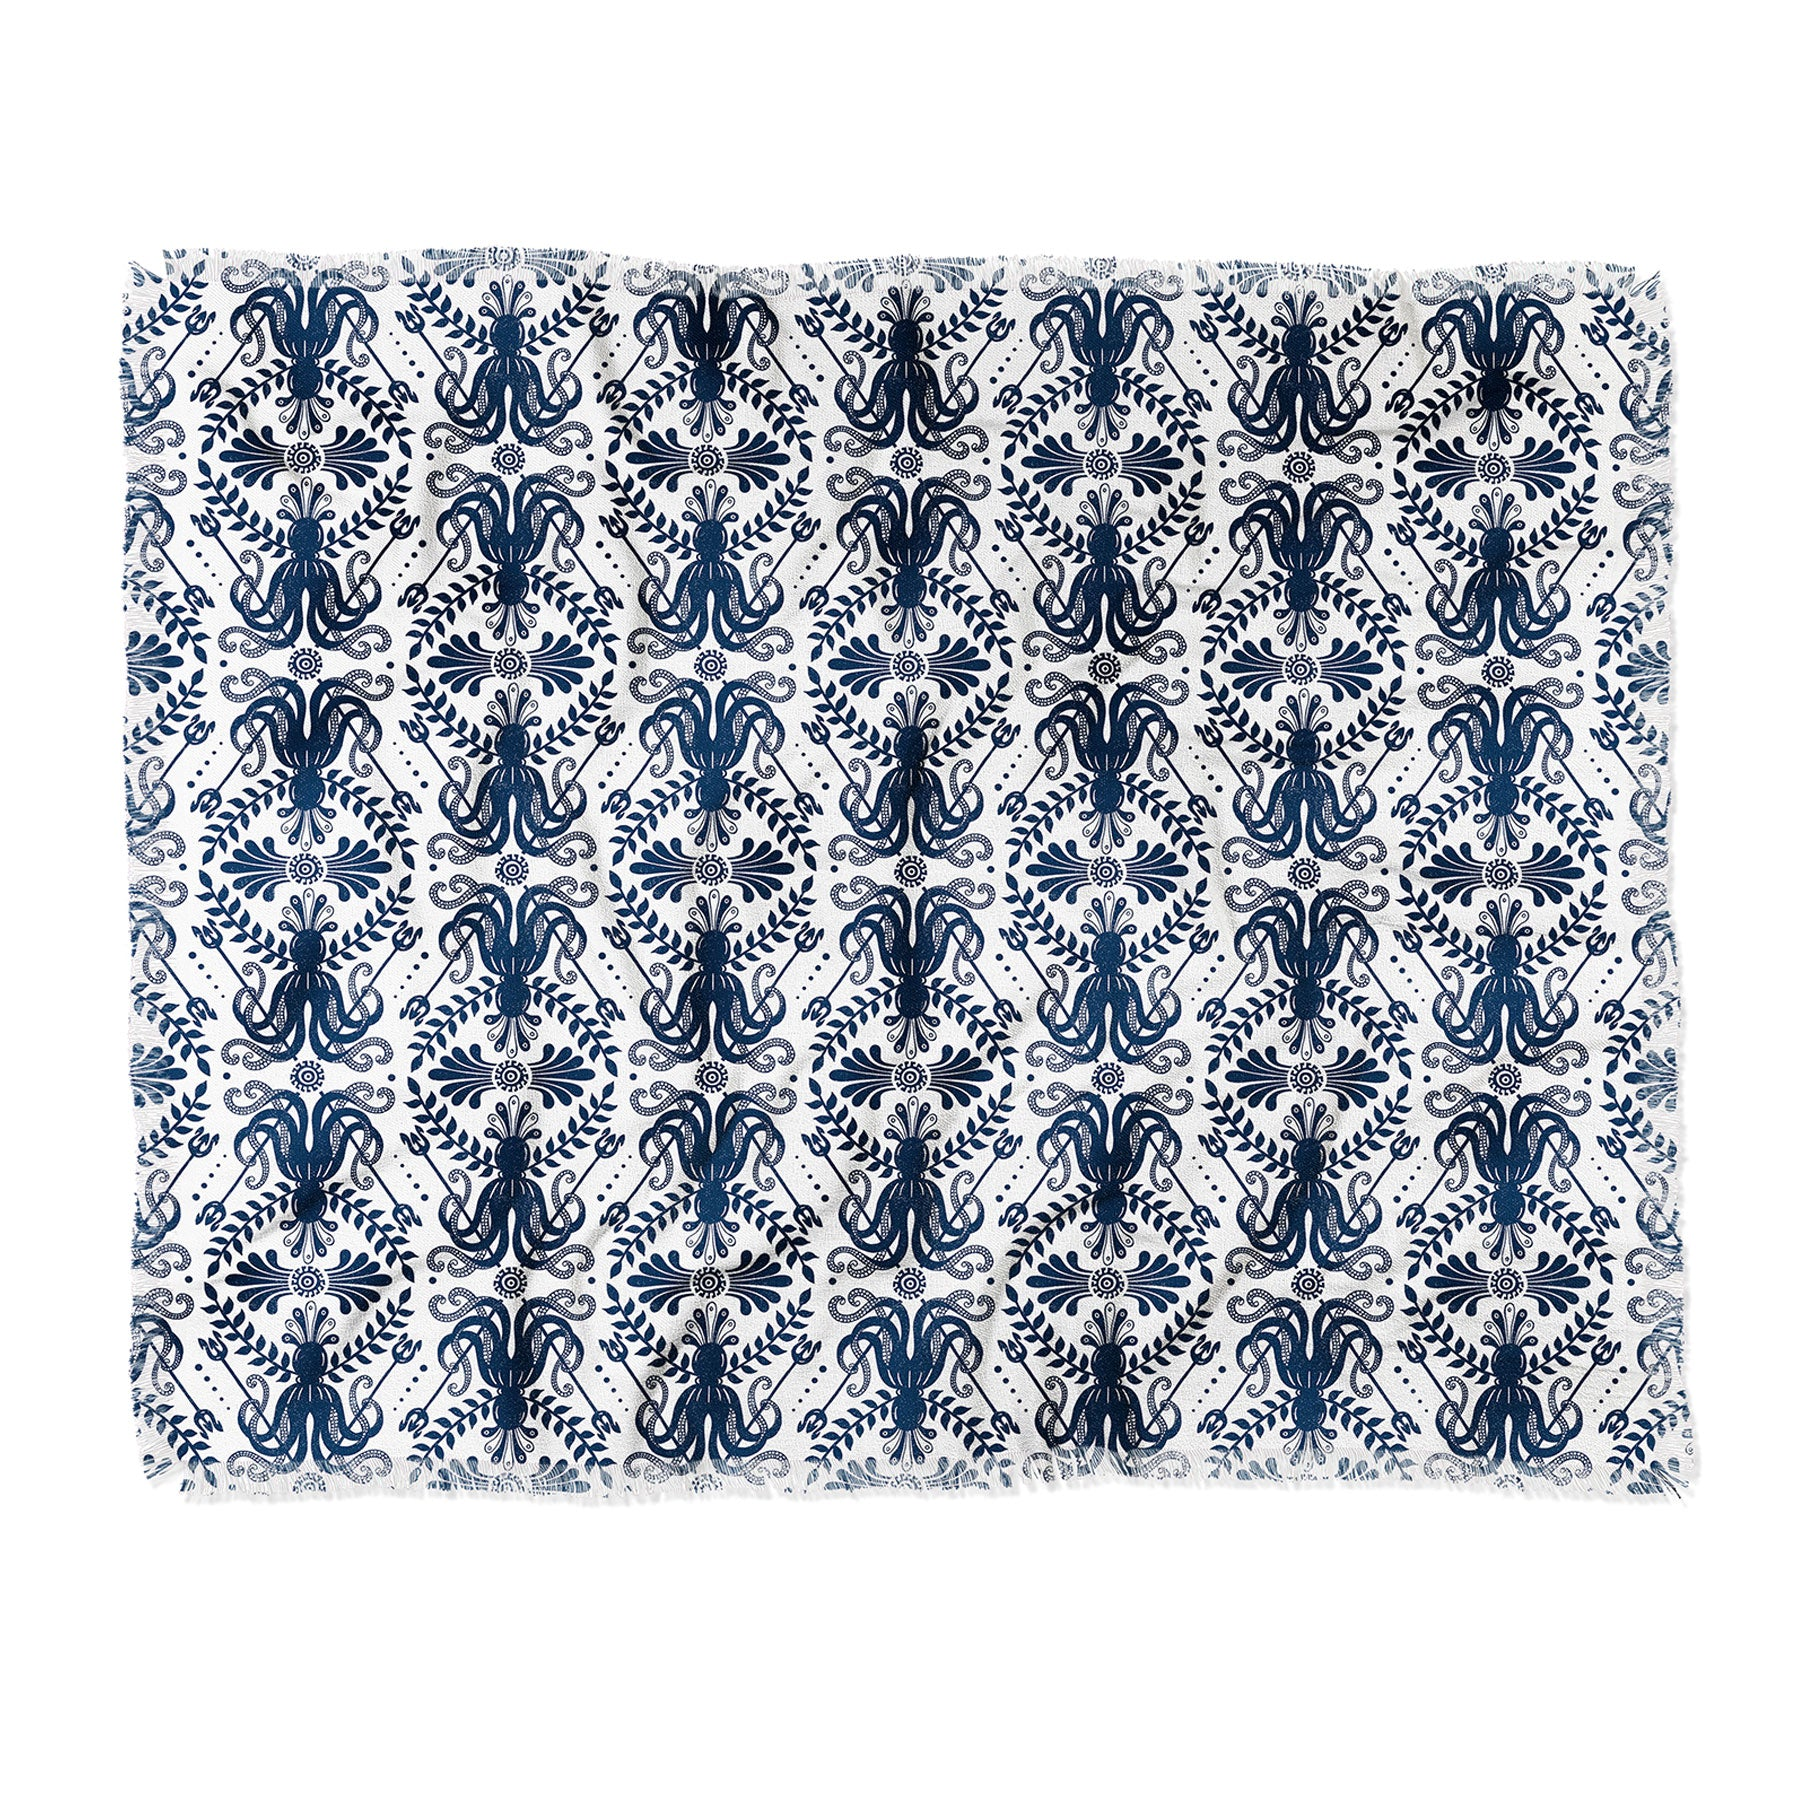 Heather Dutton Mythos Oceanic Throw Blanket